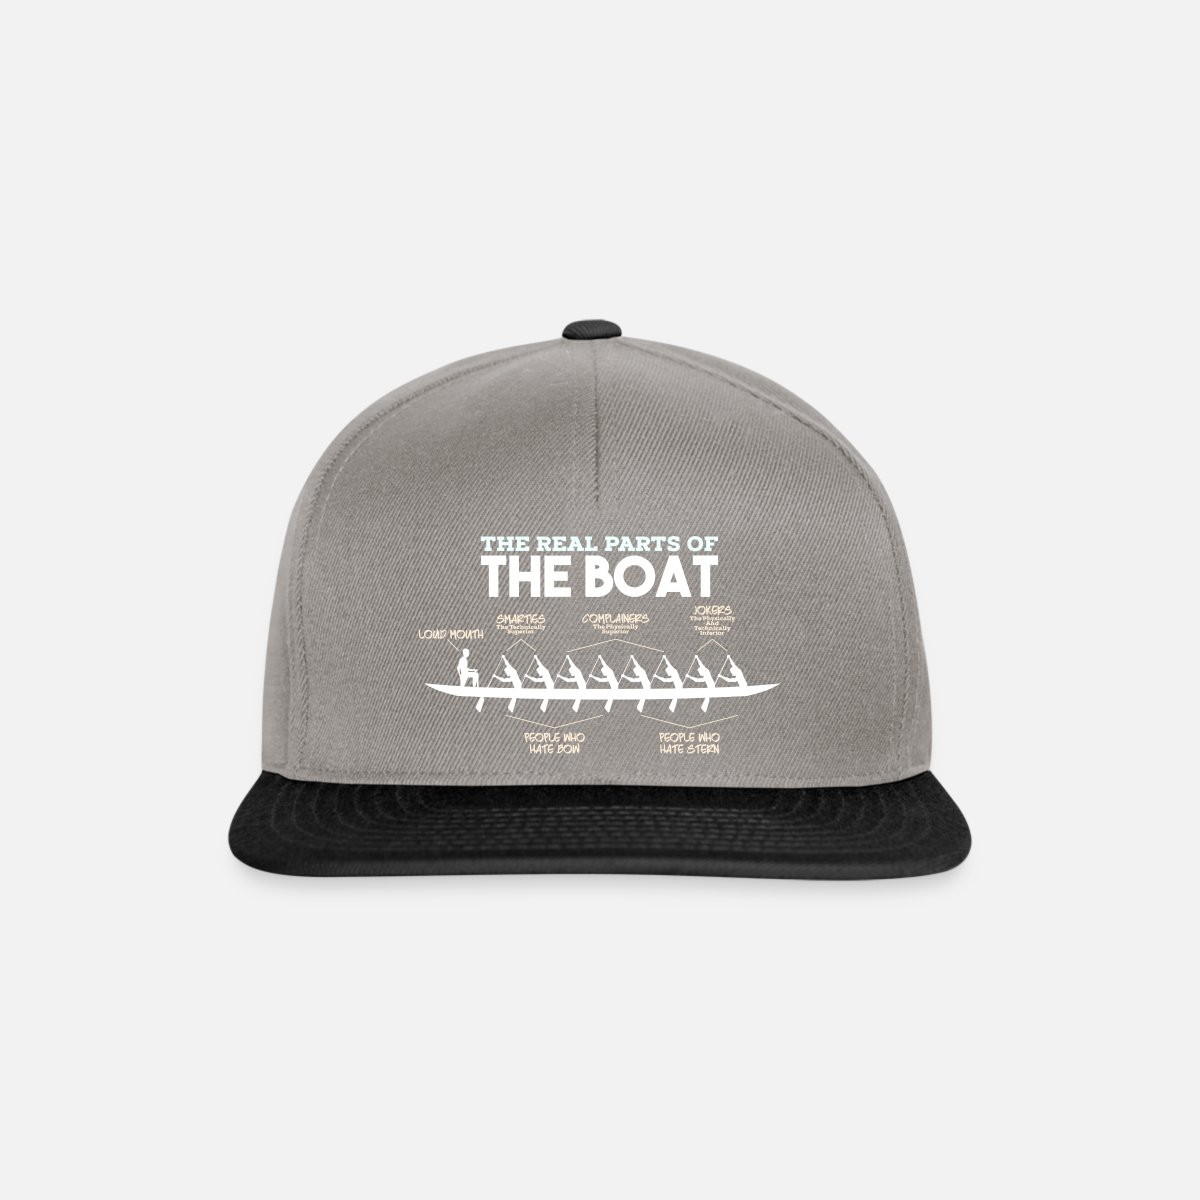 Parts of a Boat - rowing rowing rower canoe boat Snapback Cap -  graphite/black